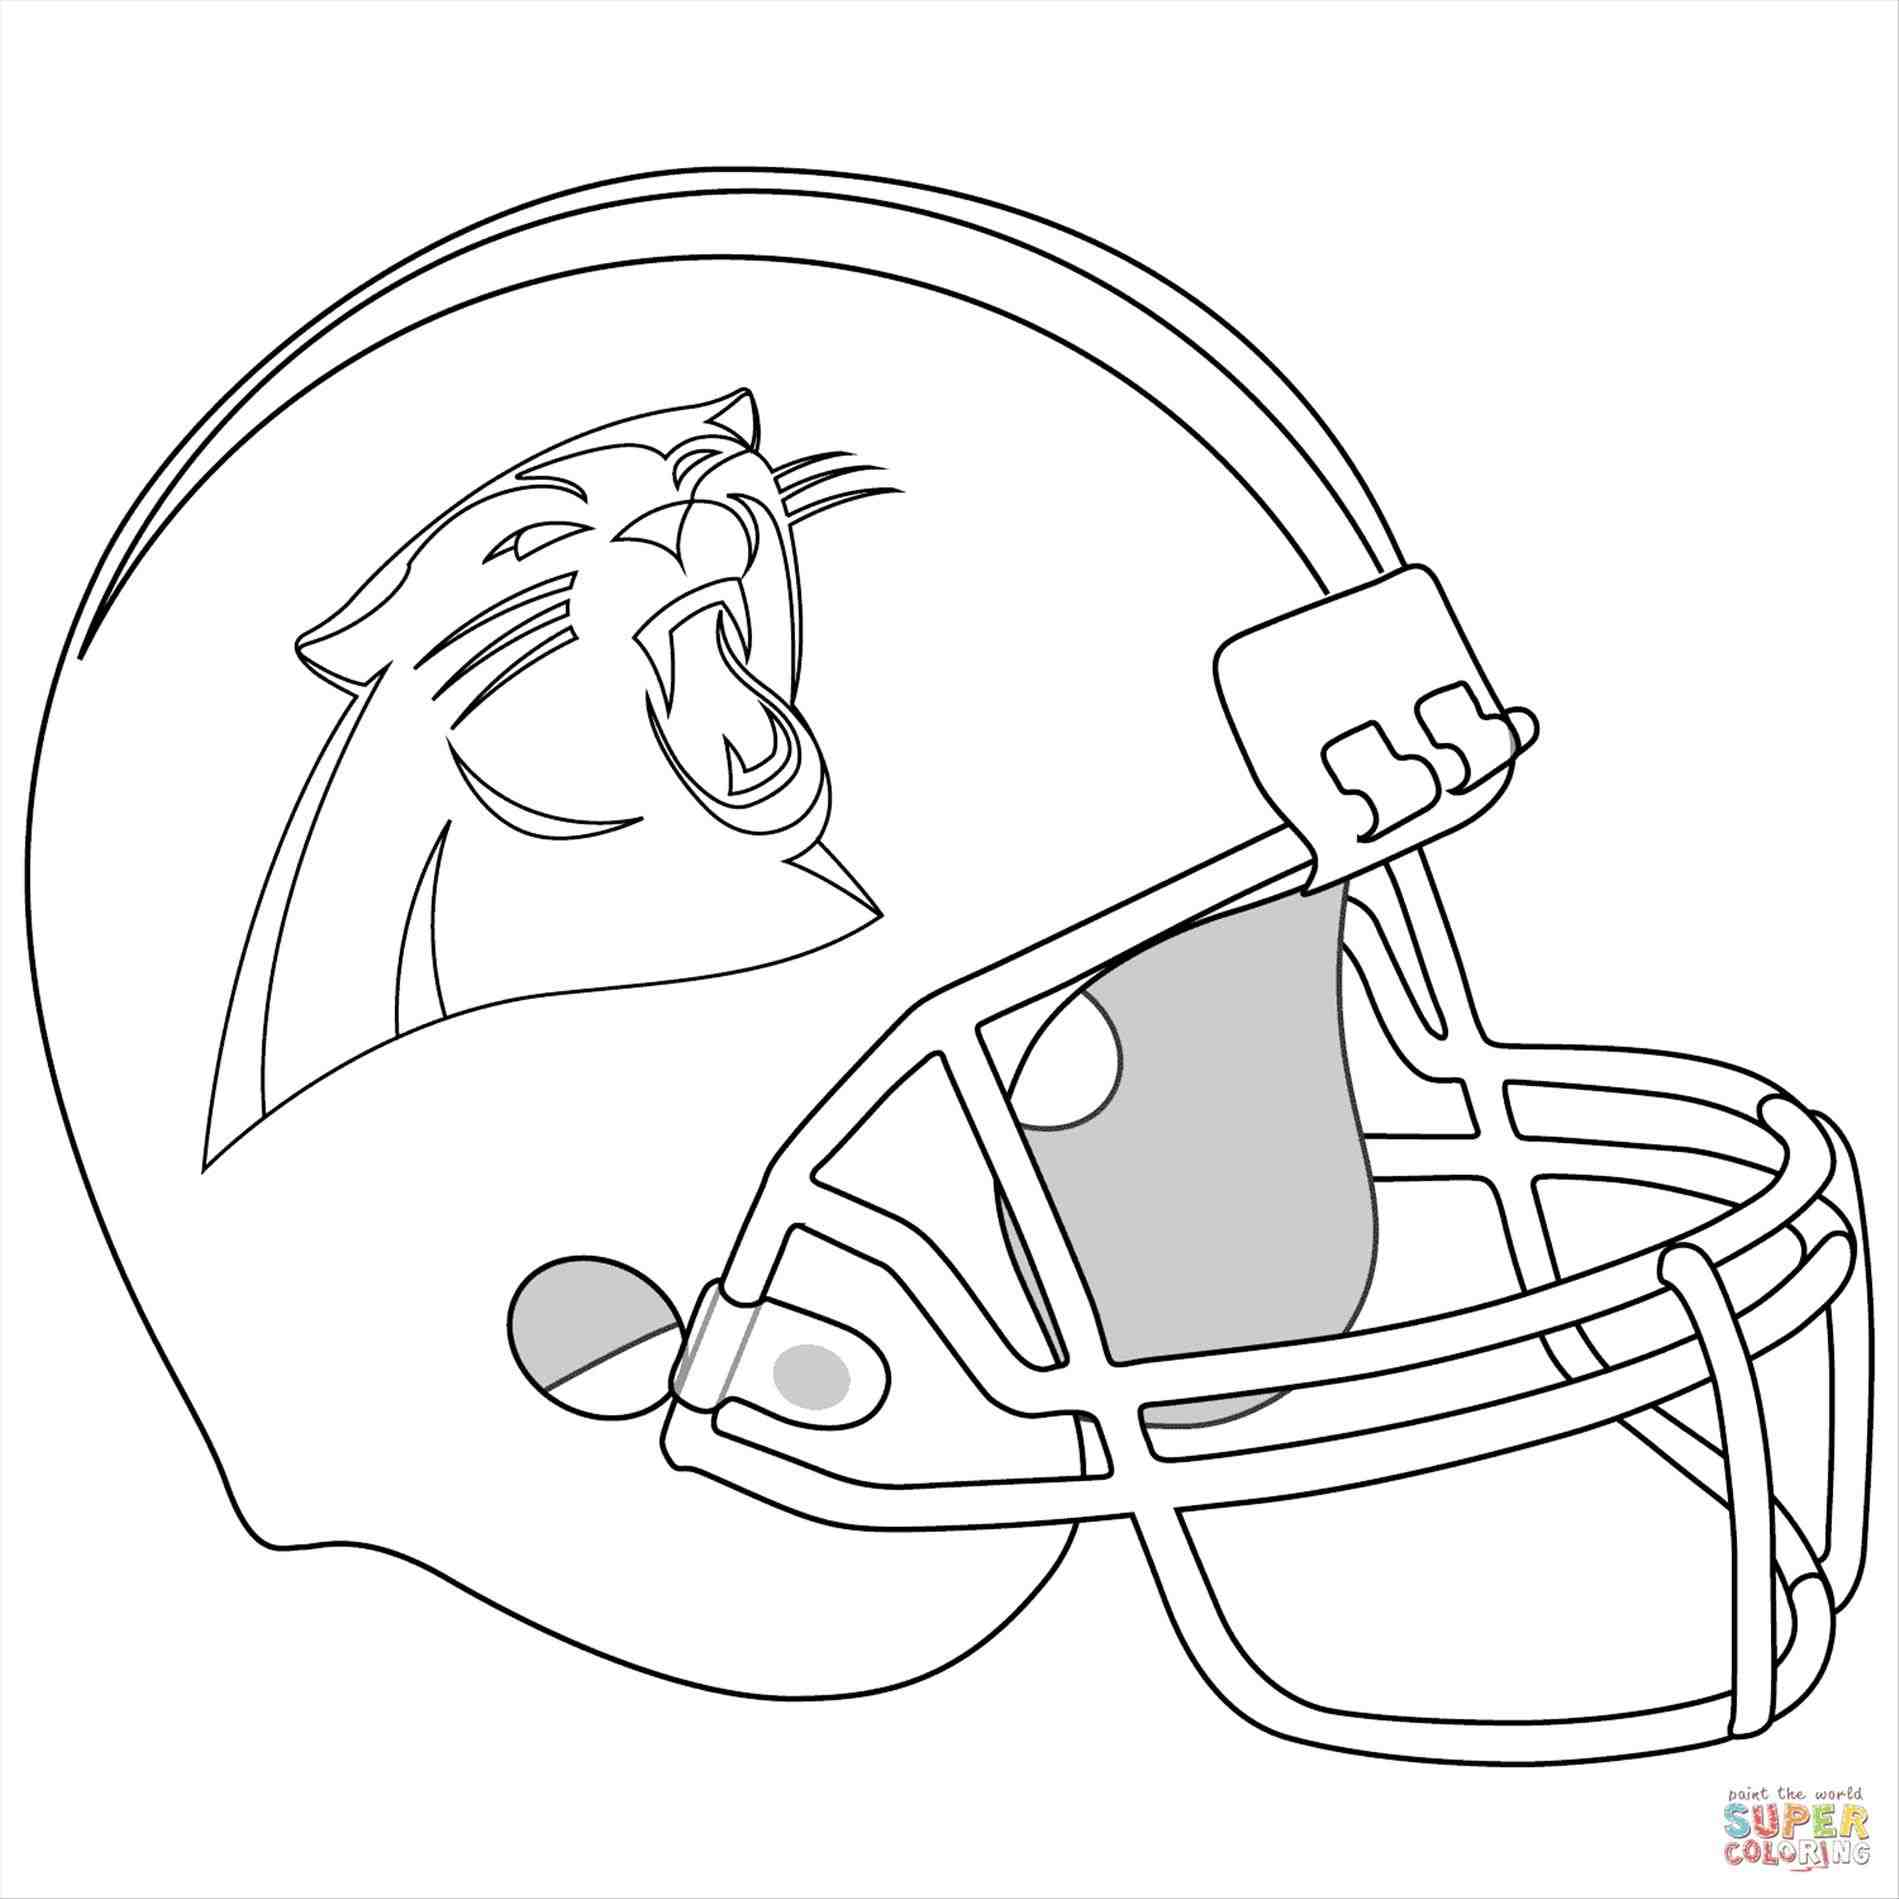 panther coloring pages panther head drawing at getdrawings free download pages panther coloring